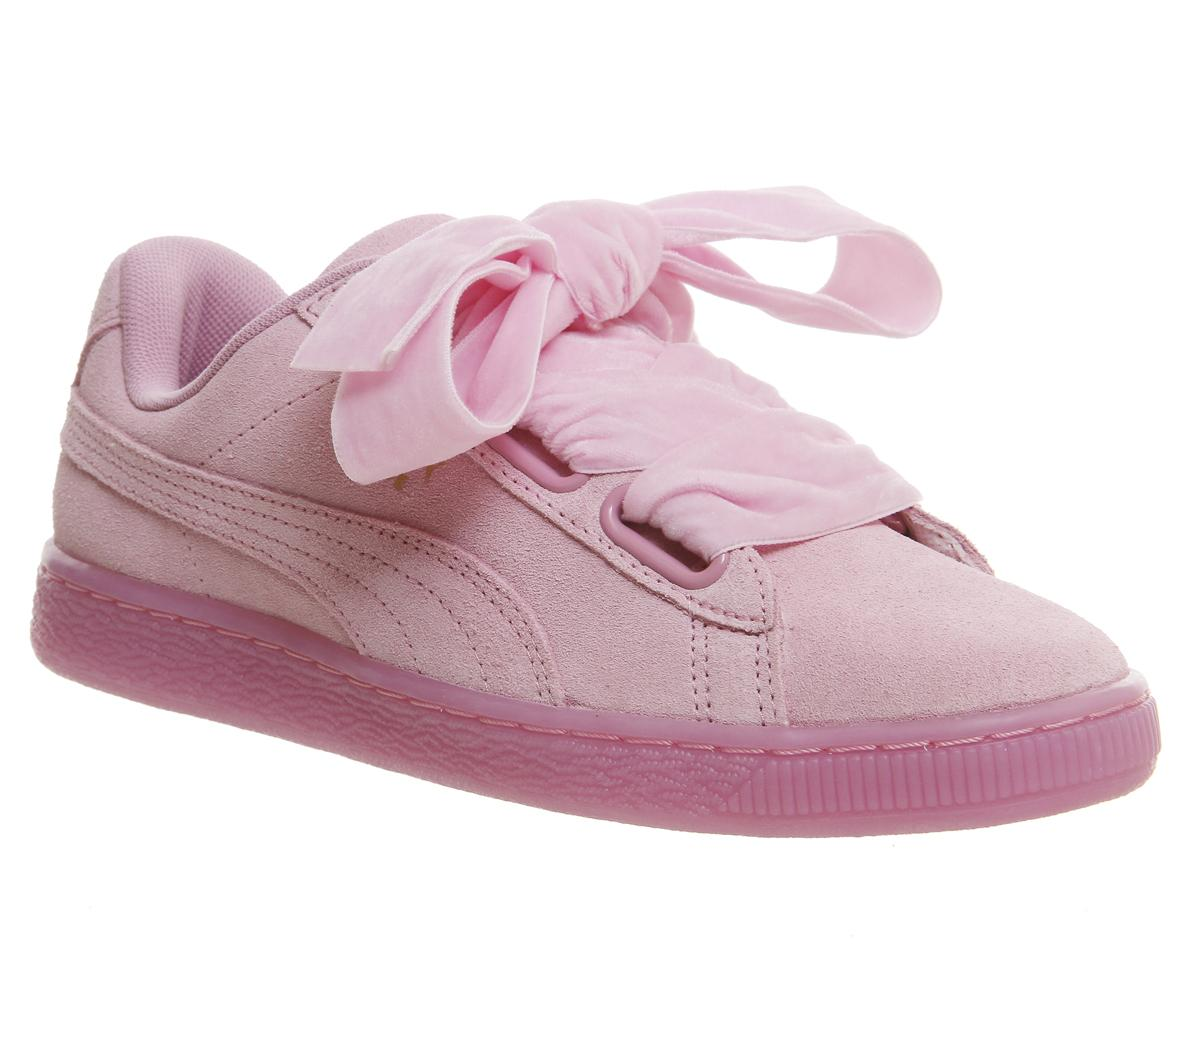 Puma Suede Heart Prism Pink - Hers trainers